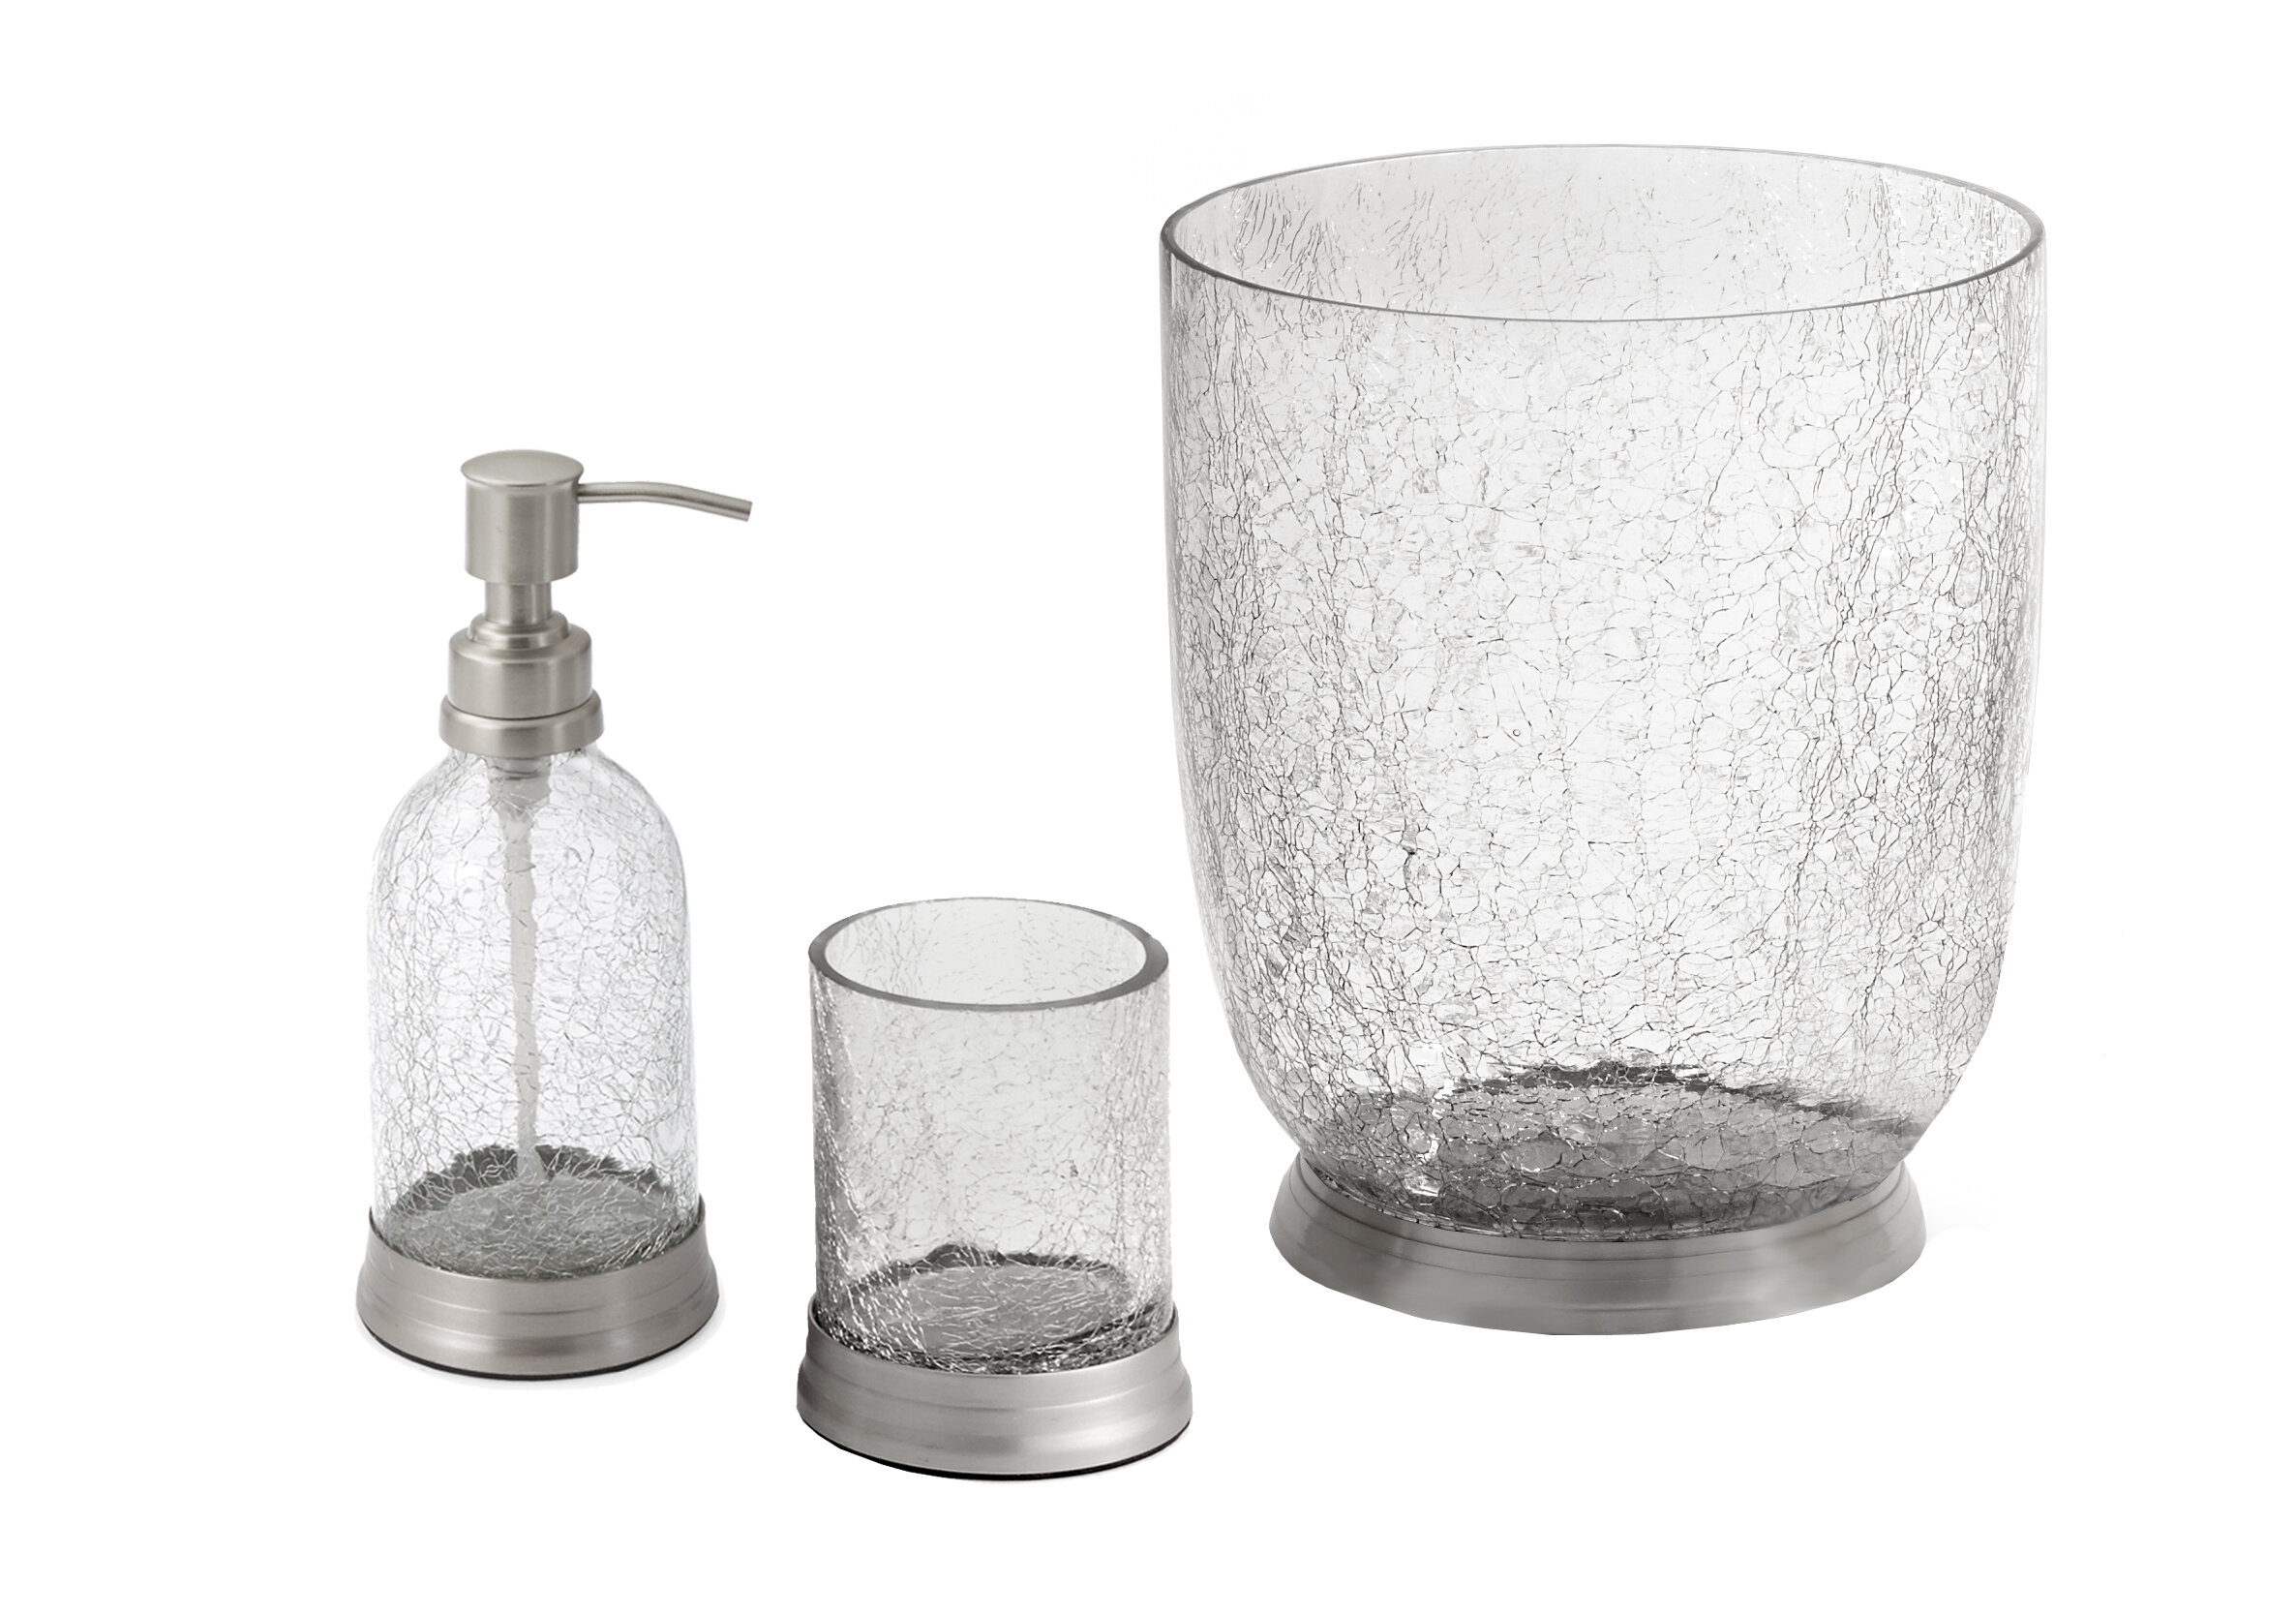 Paradigm Trends Heirloom 3-Piece Bathroom Accessory Set | Wayfair